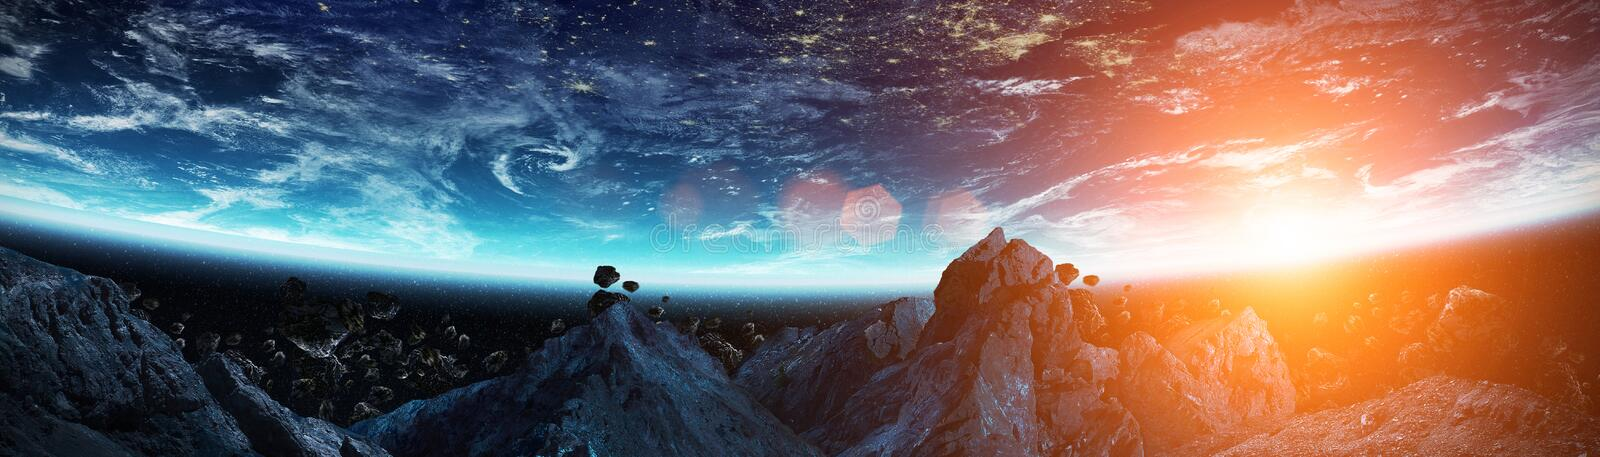 Panoramic view of planet Earth with asteroids flying close 3D re. Panoramic view of planet Earth with asteroids flying close in space 3D rendering elements of stock illustration